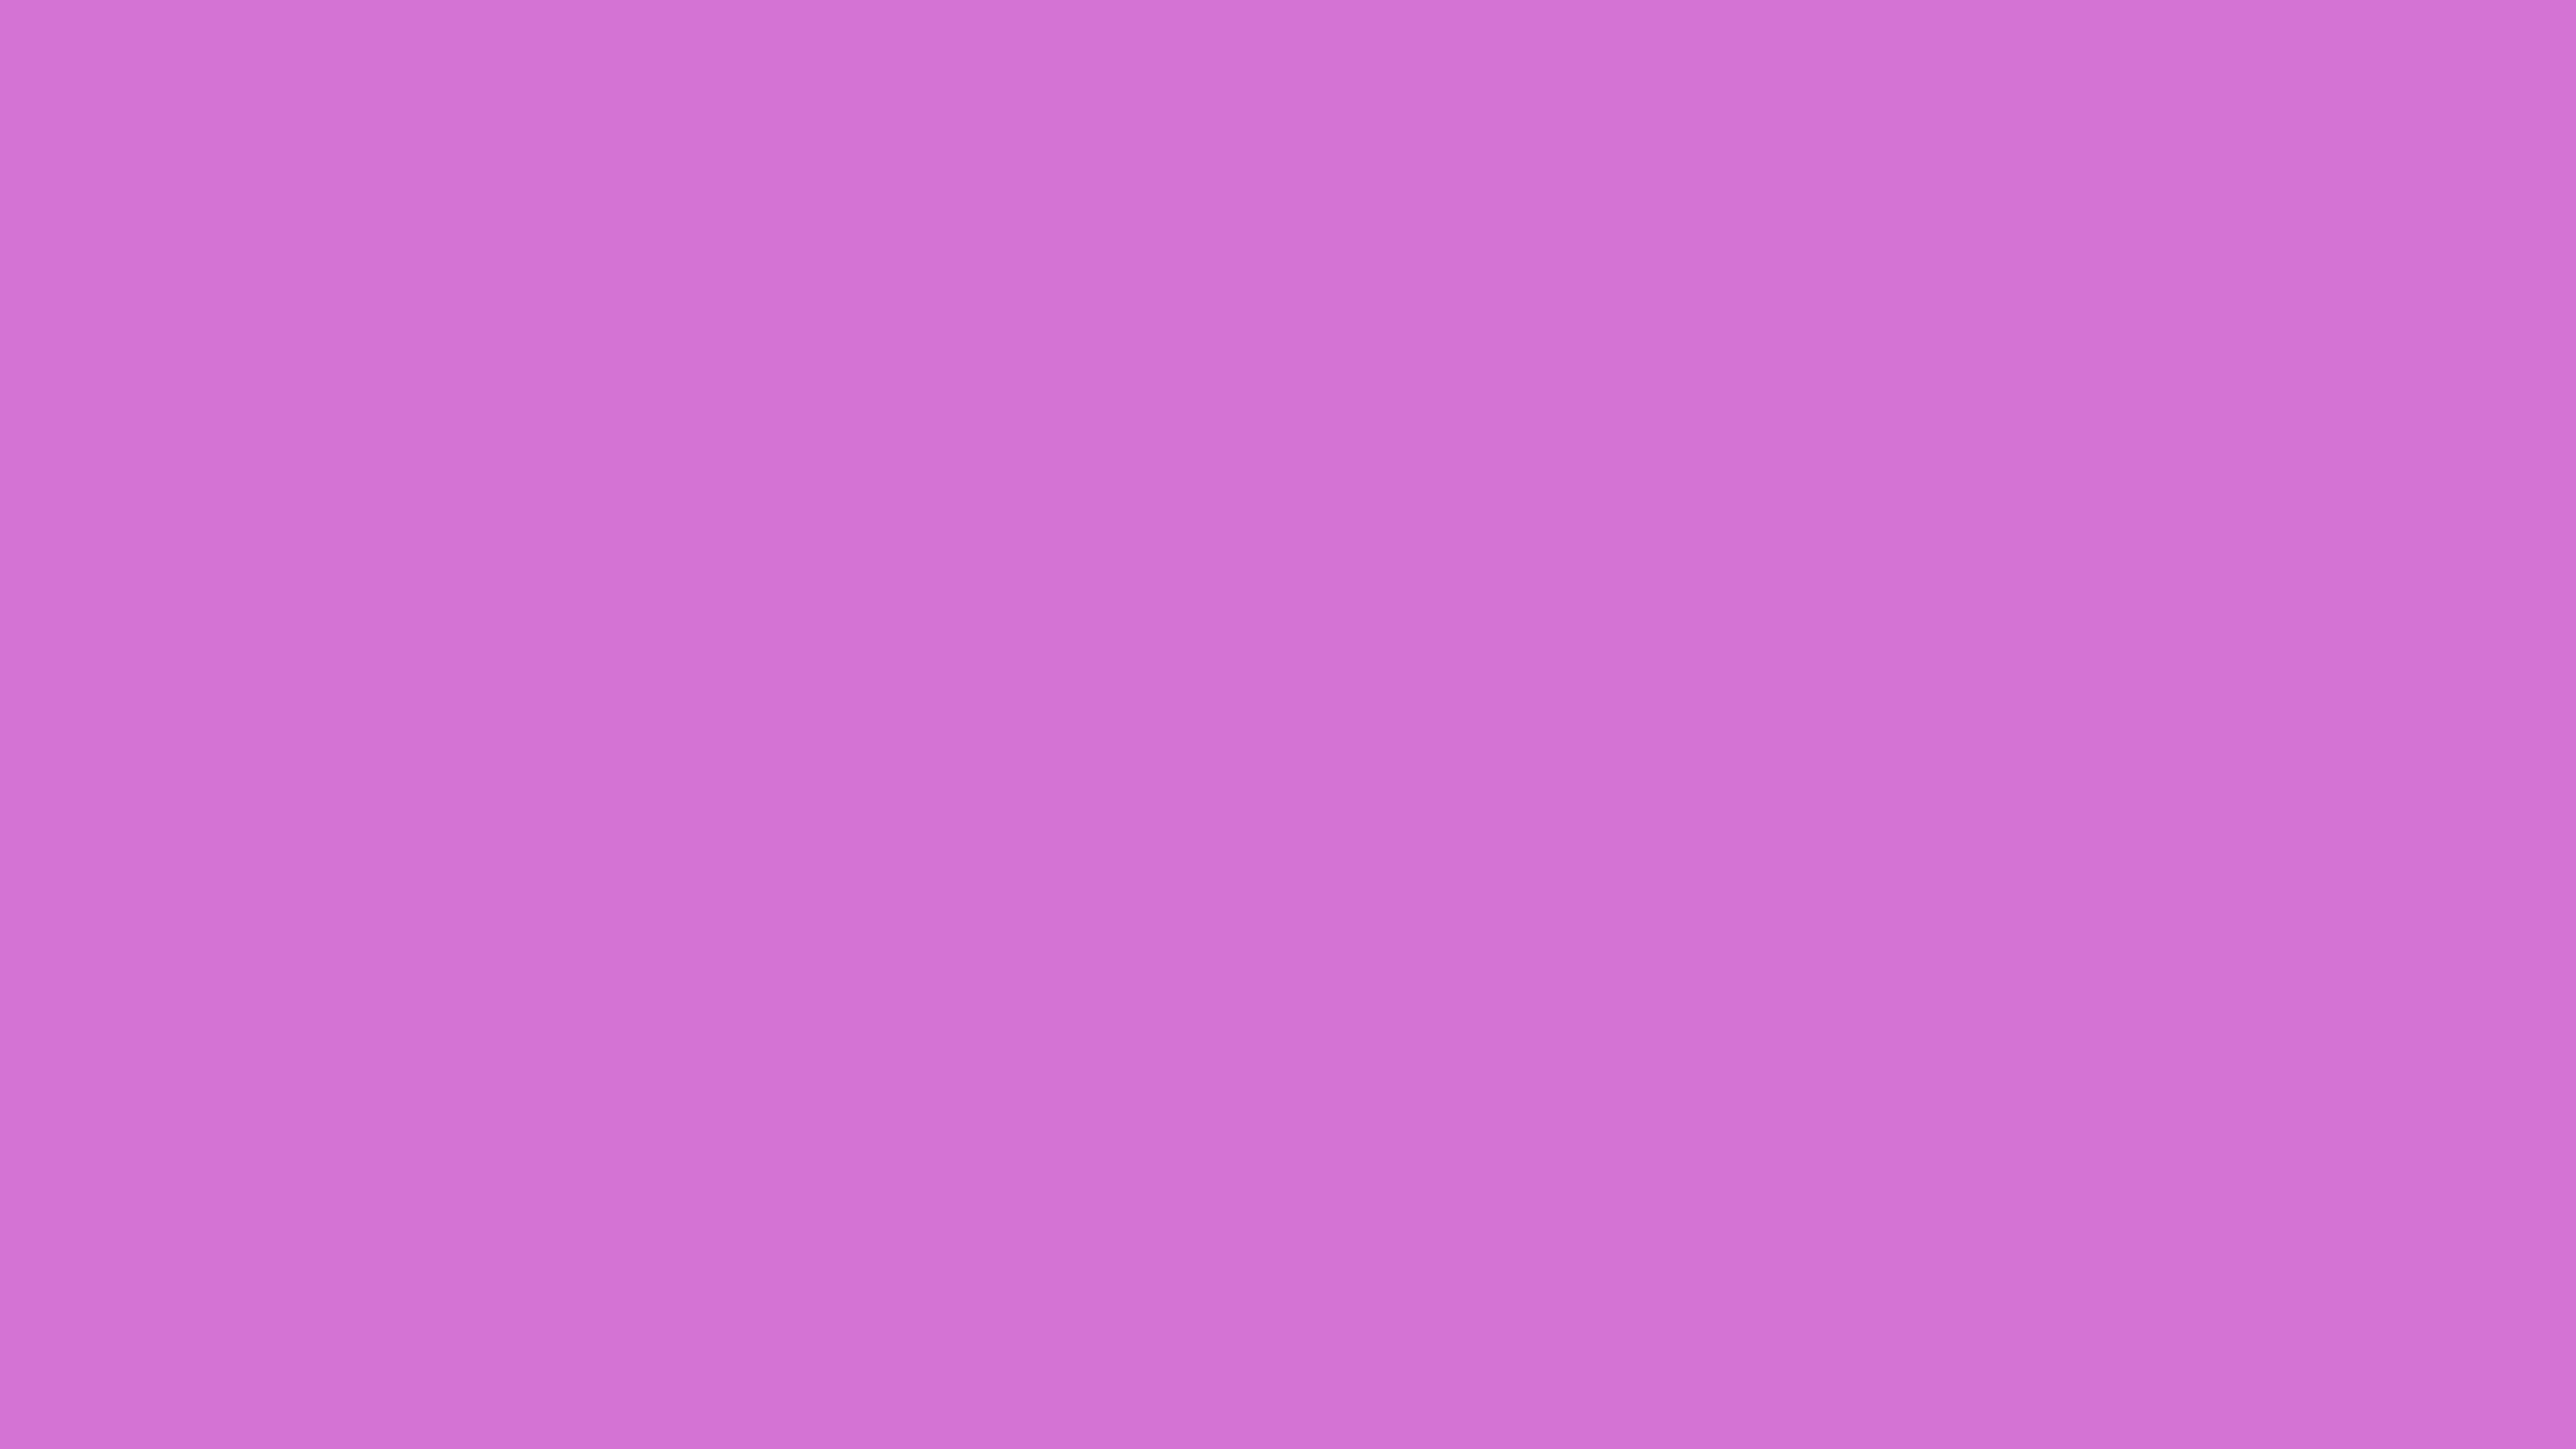 3840x2160 Deep Mauve Solid Color Background